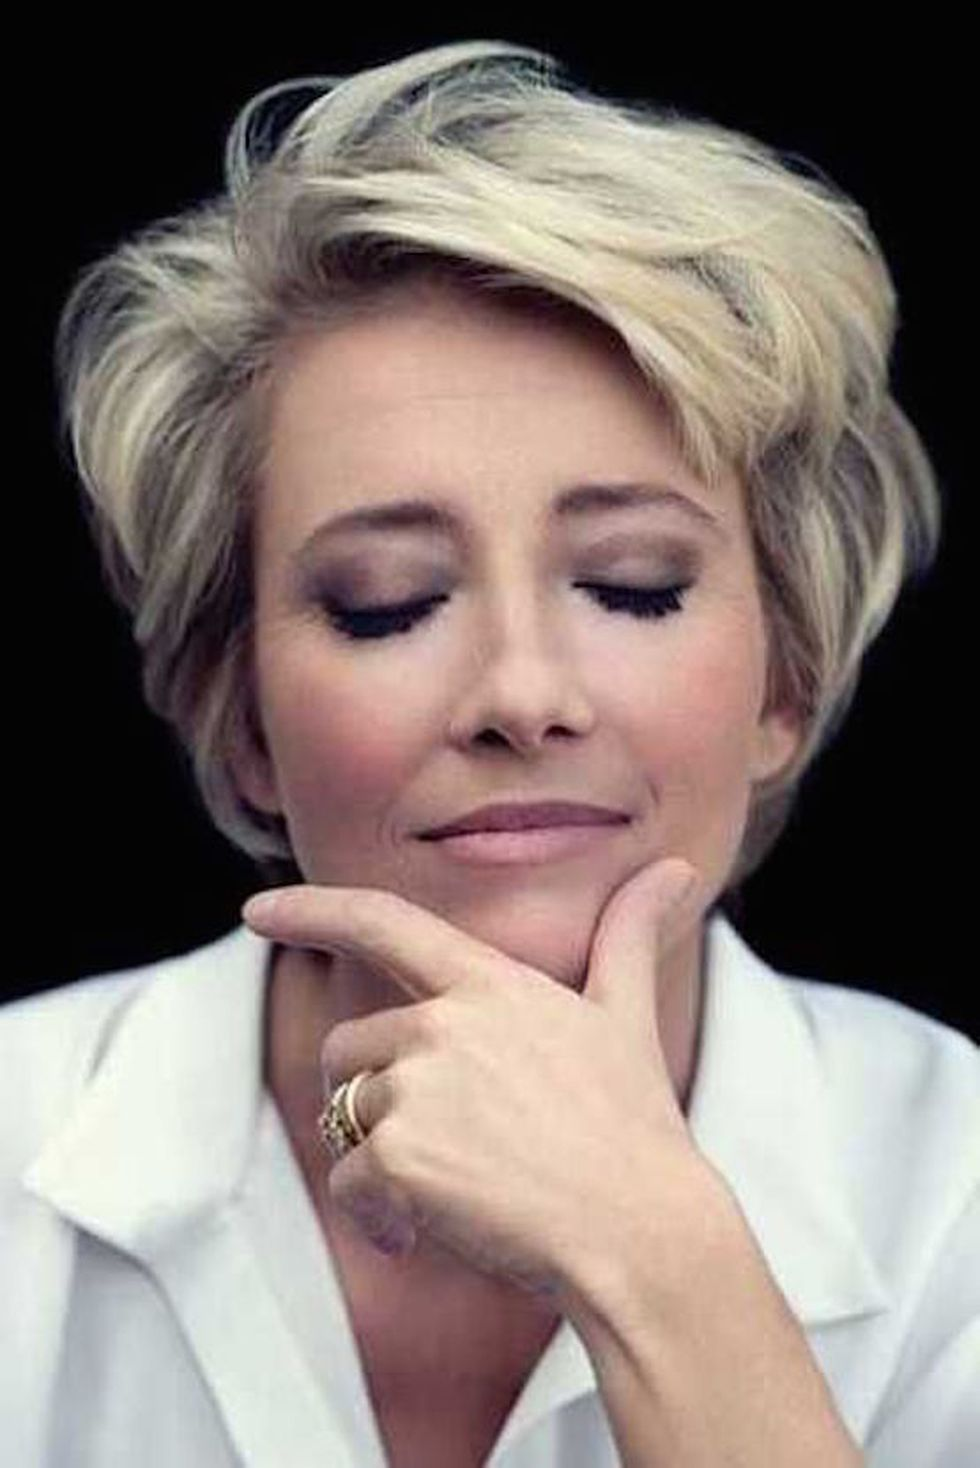 Fabulous over 50 short hairstyle ideas 35